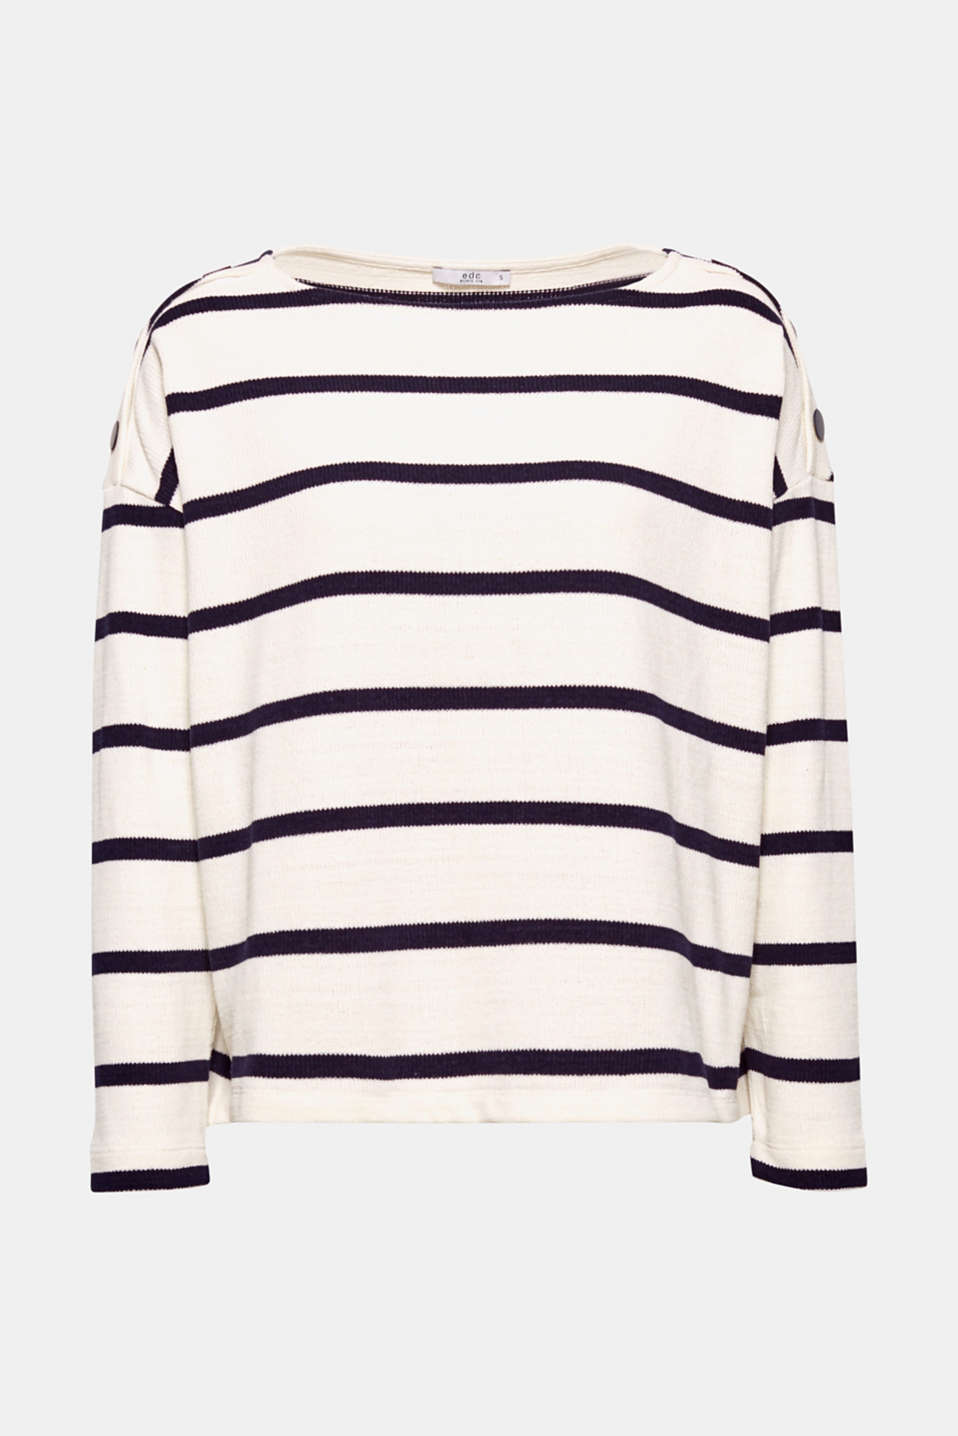 We love stripes! This striped jumper with a button detail features a fine knit look.